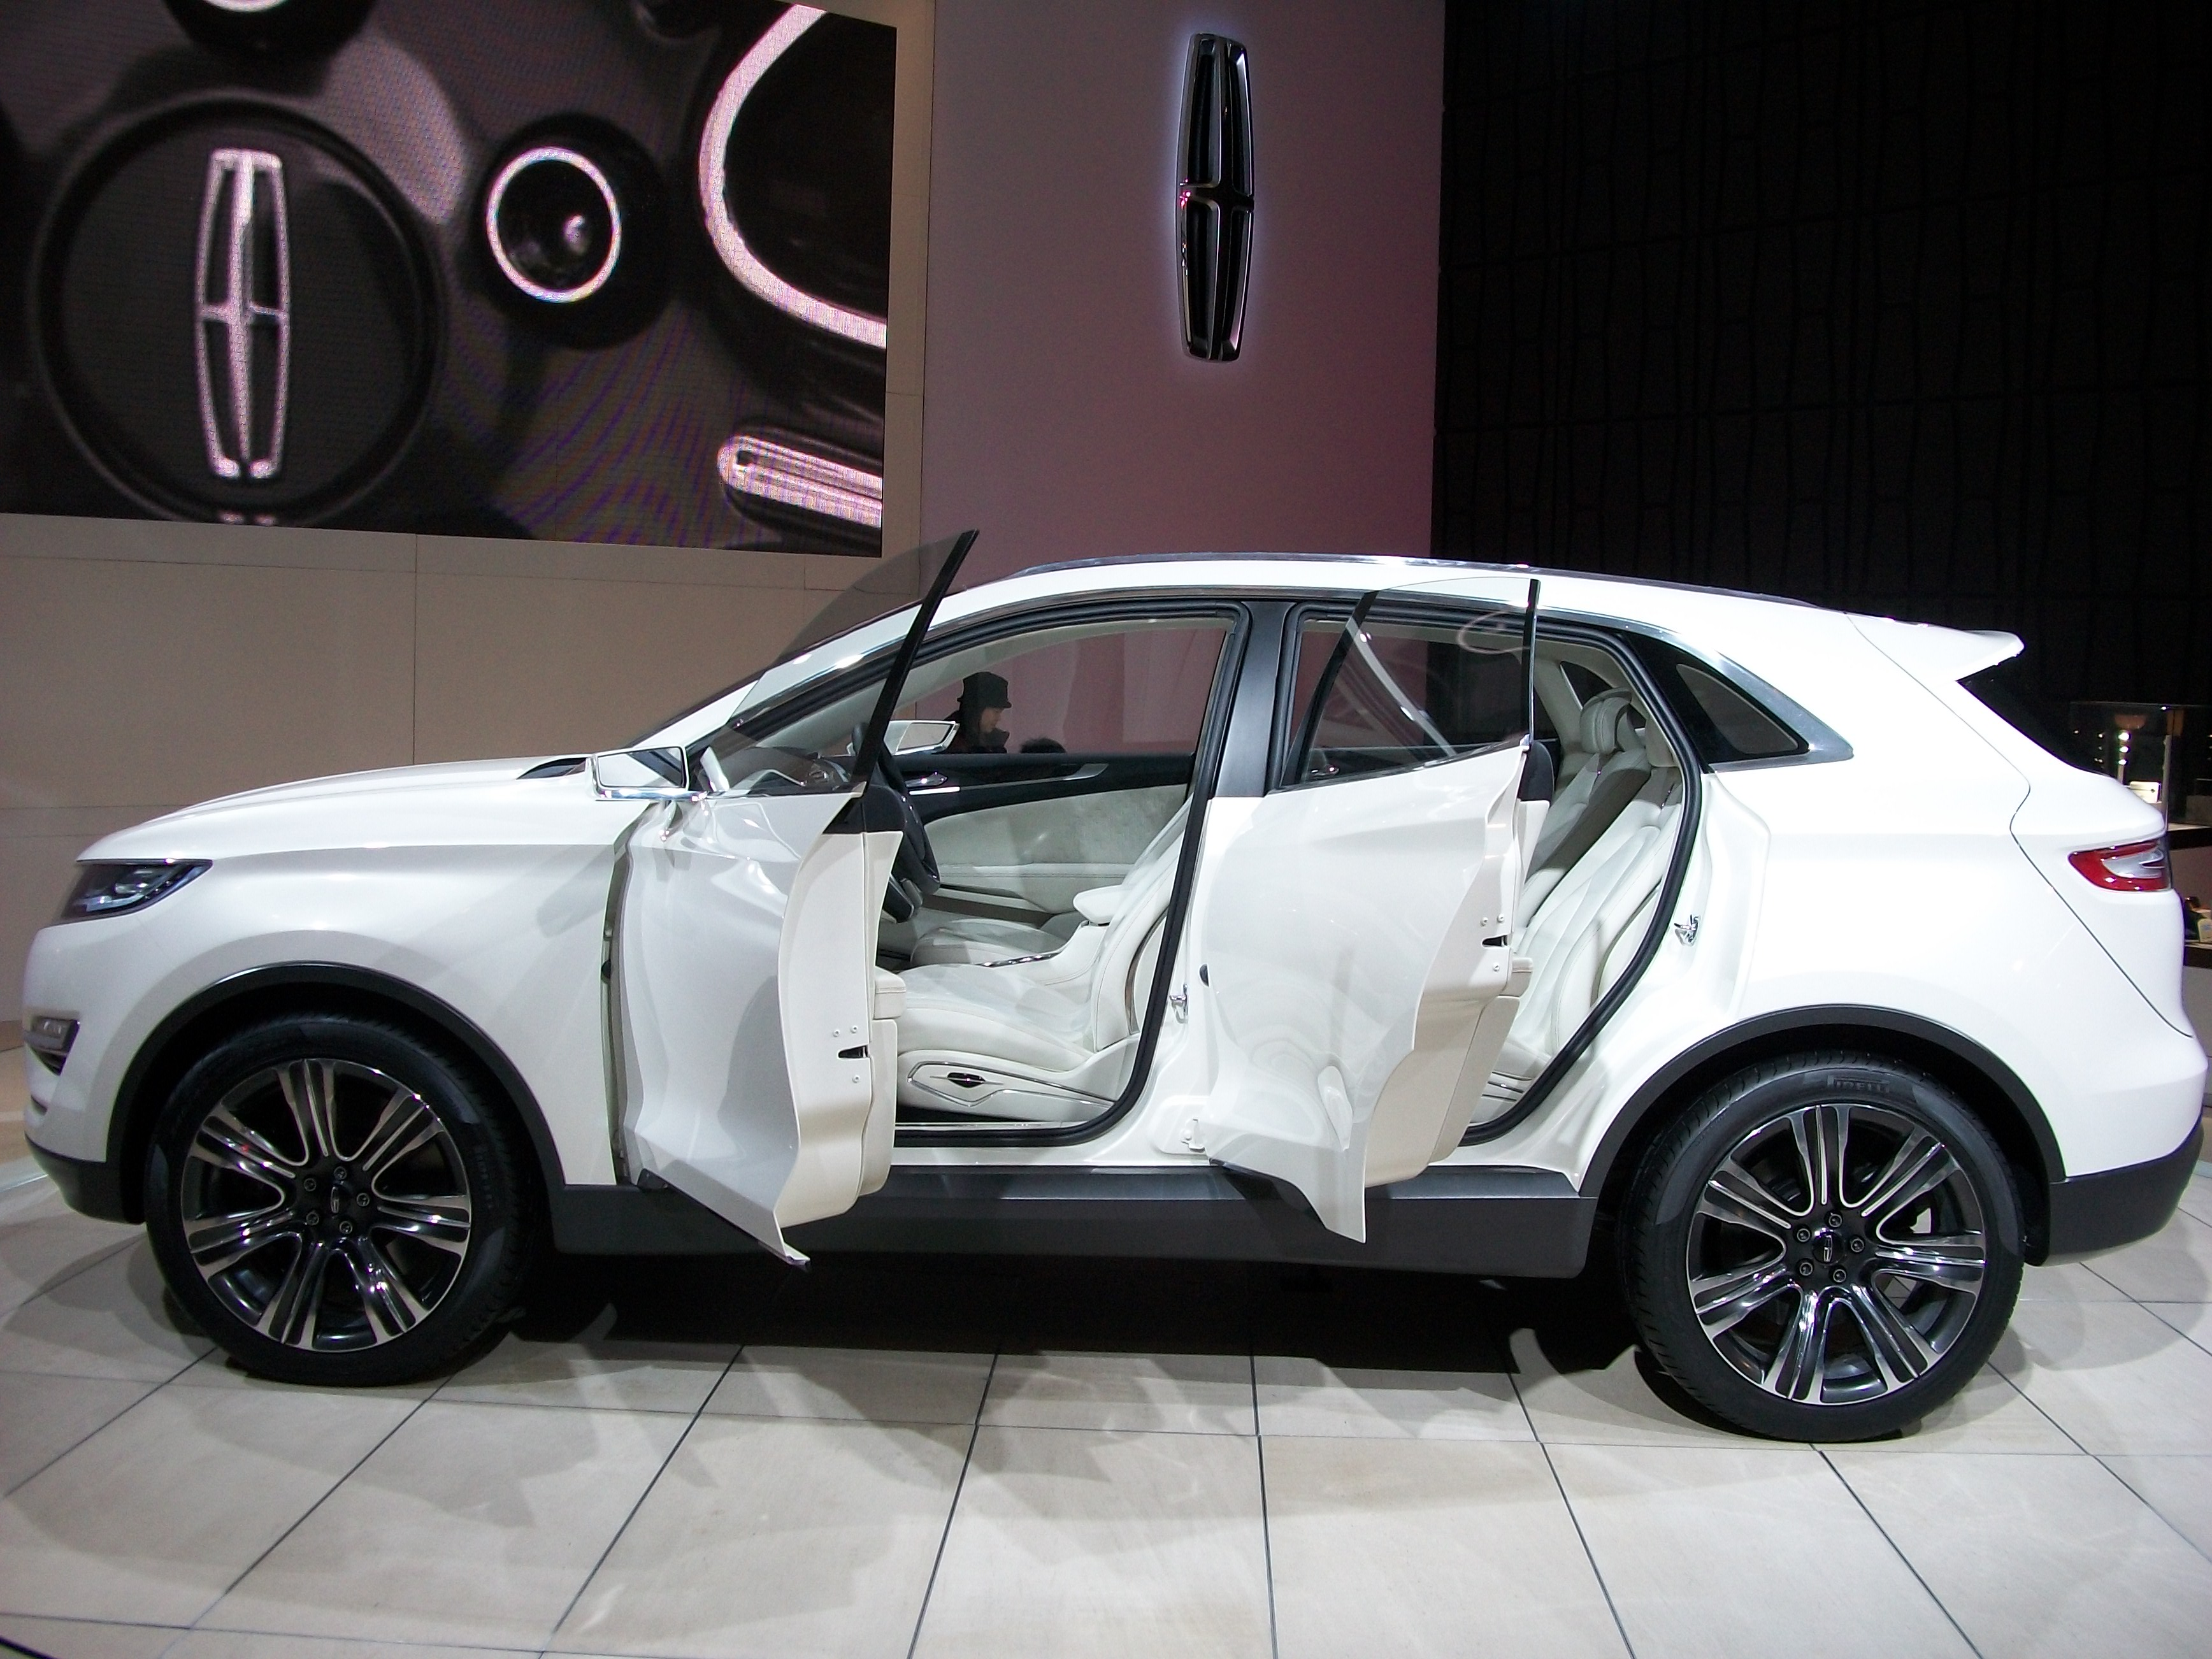 File:Lincoln MKC Concept - Side View - 2013 CIAS.JPG - Wikimedia Commons